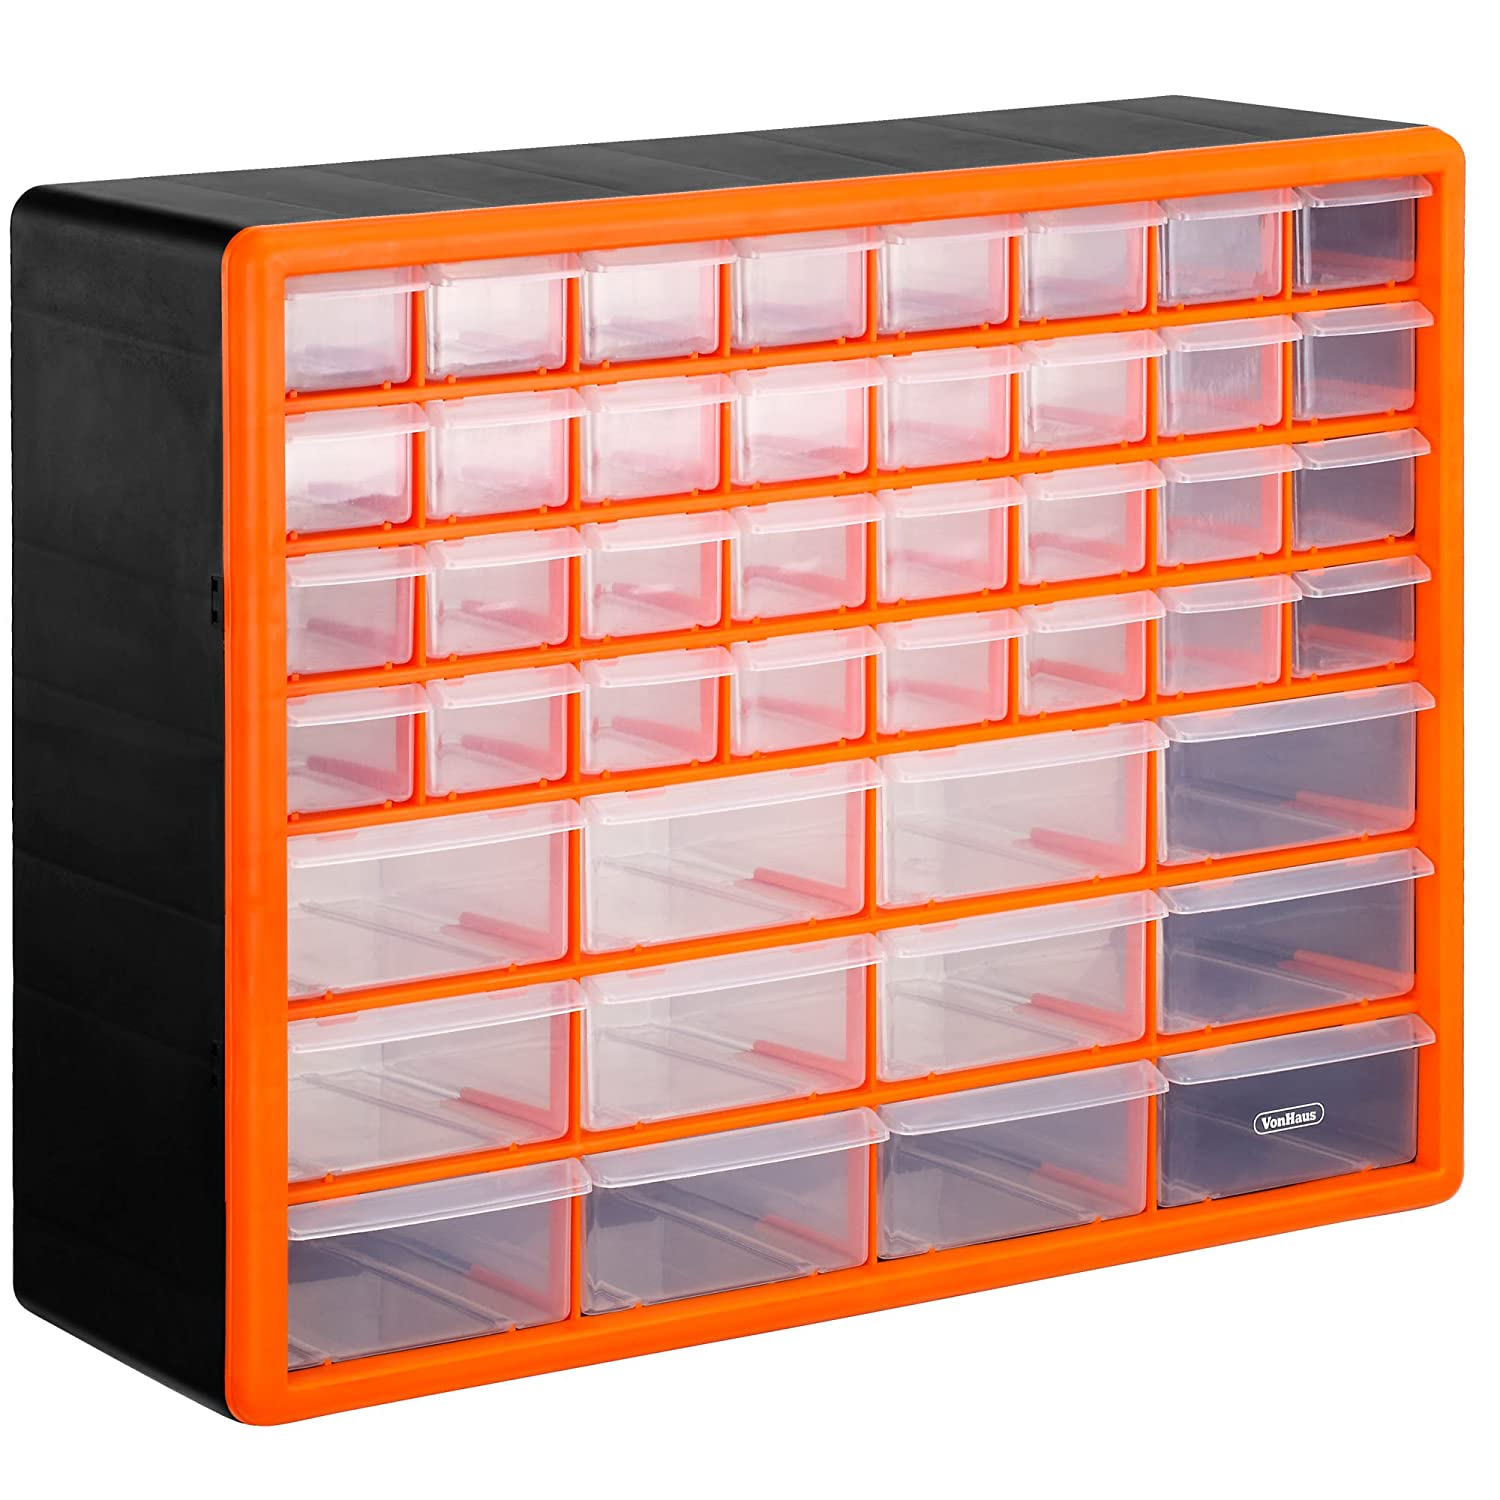 Vonhaus  Multi Drawer Storage Cabinet Organiser Amazon Co Uk Diy Tools